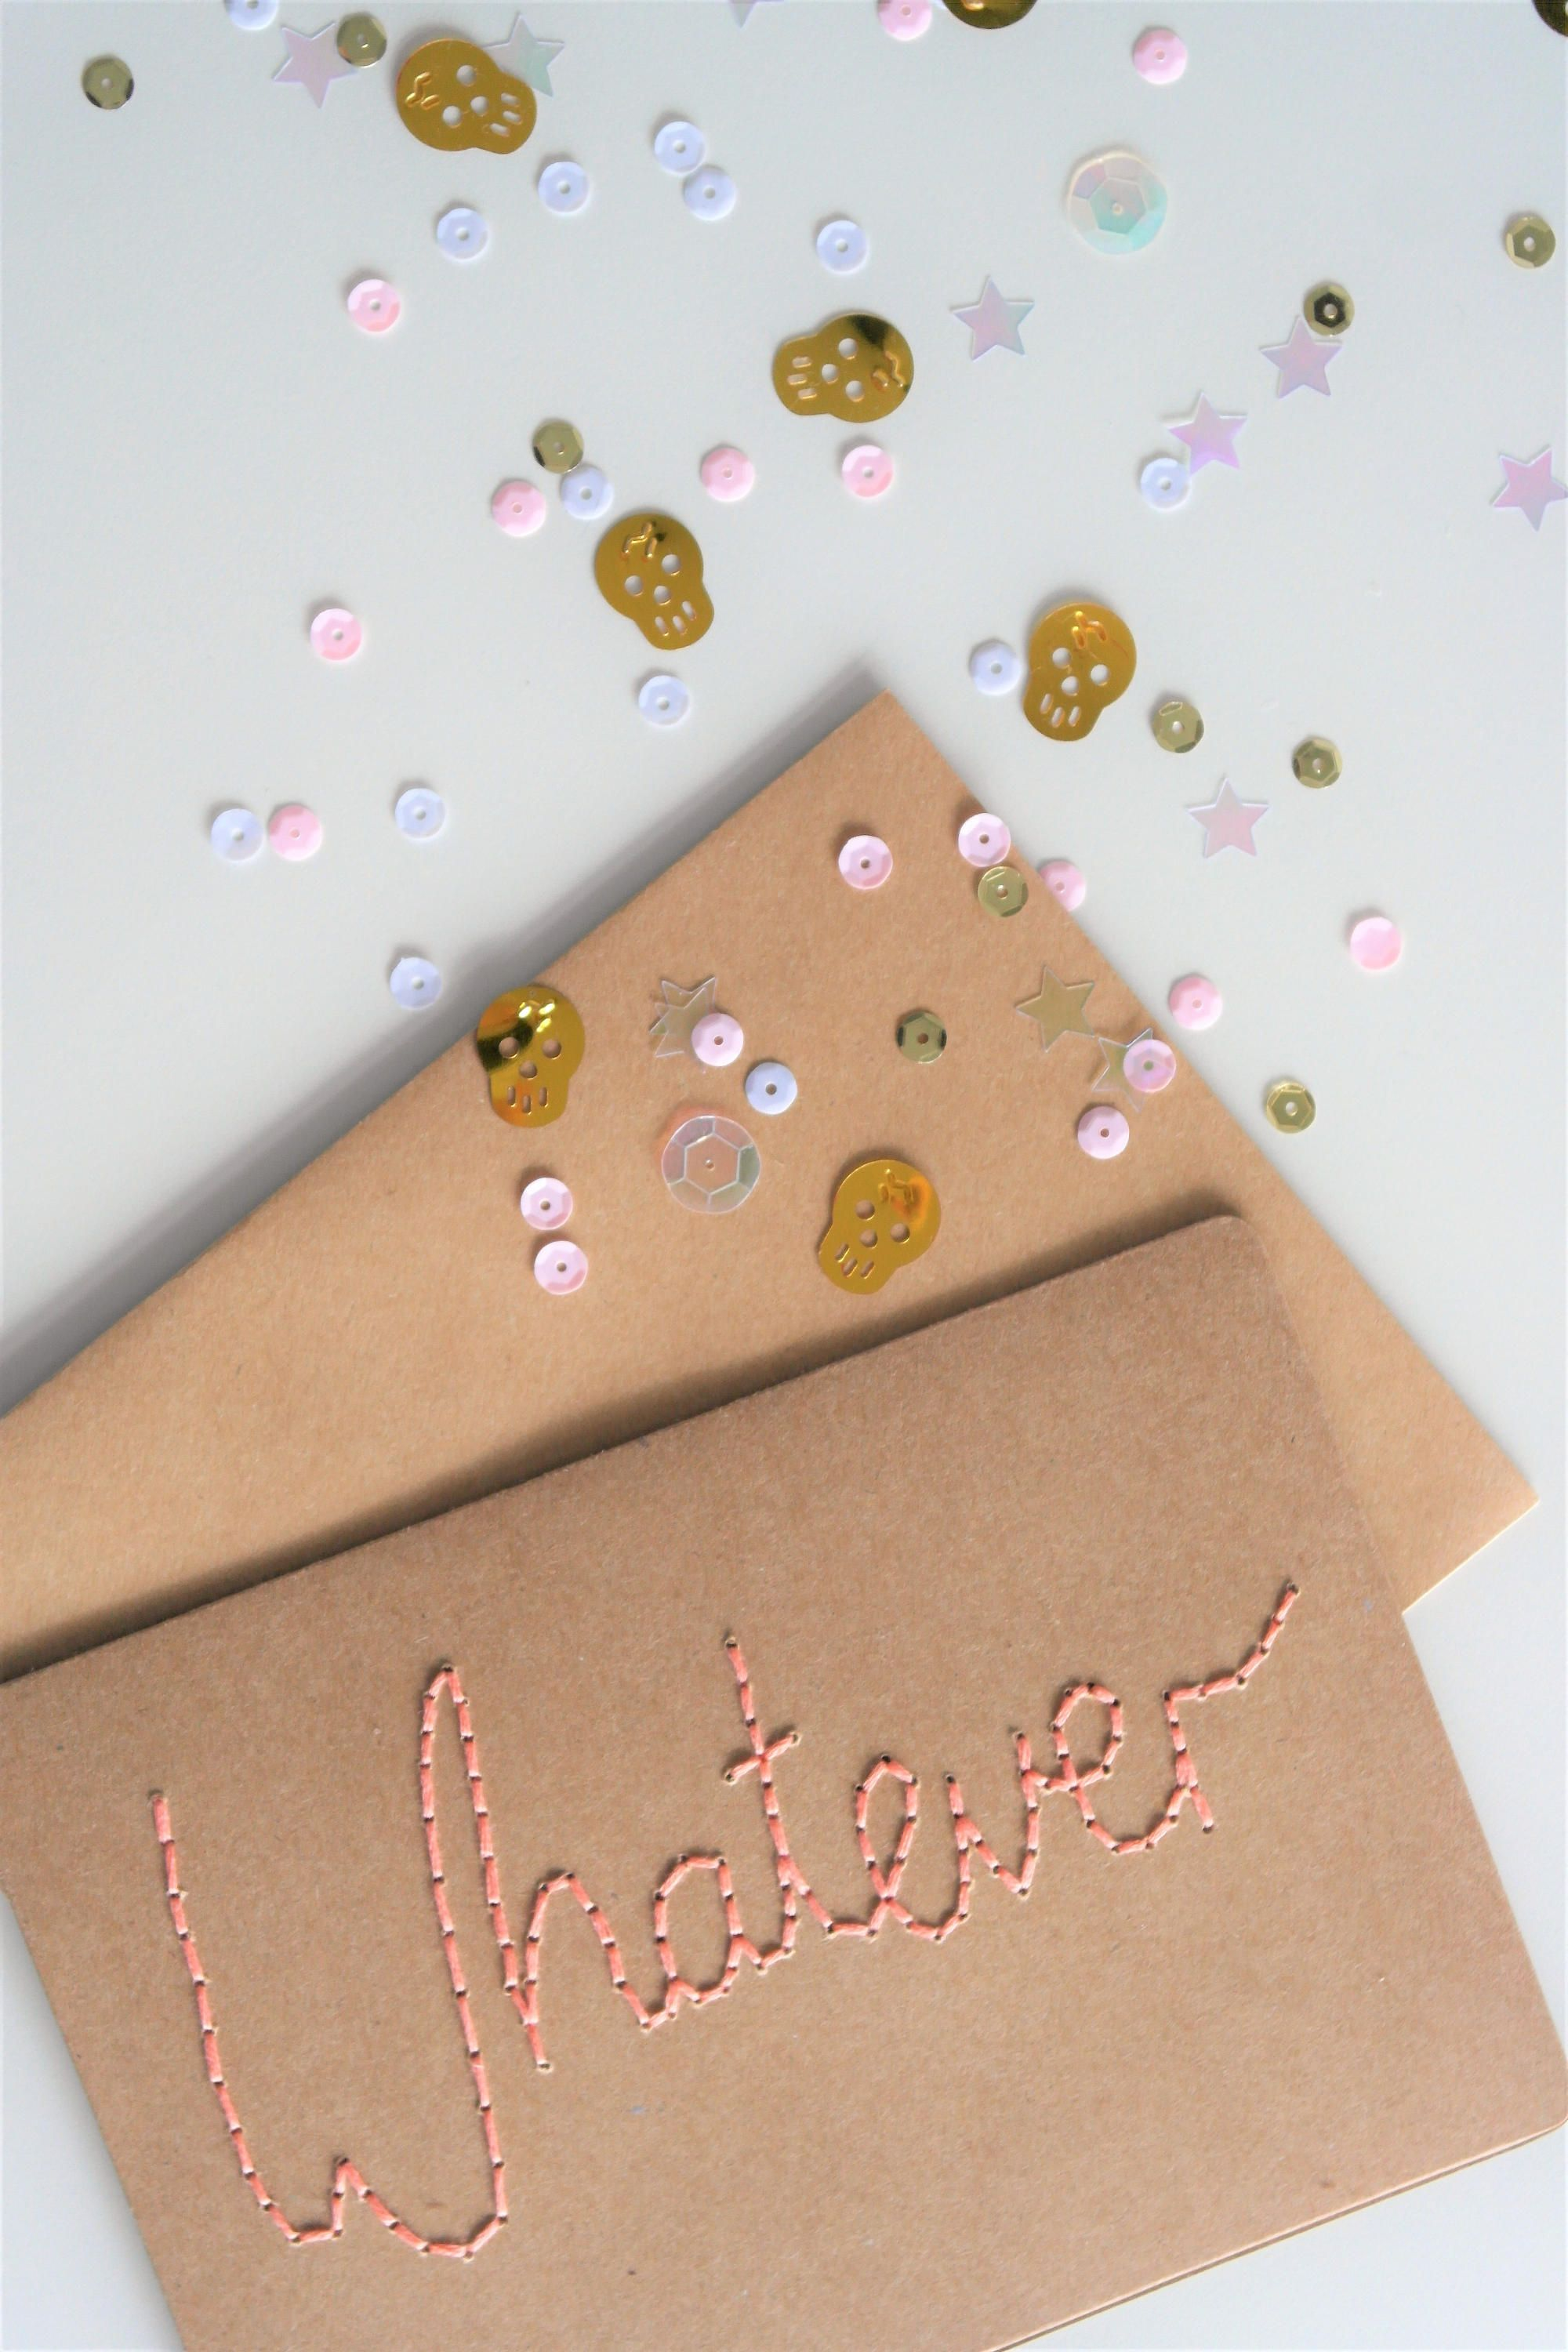 Rude funny offensive 90s nostalgia vintage inspired whatever rude funny offensive 90s nostalgia vintage inspired whatever handmade luxury greeting card with sequin confetti great kristyandbryce Images